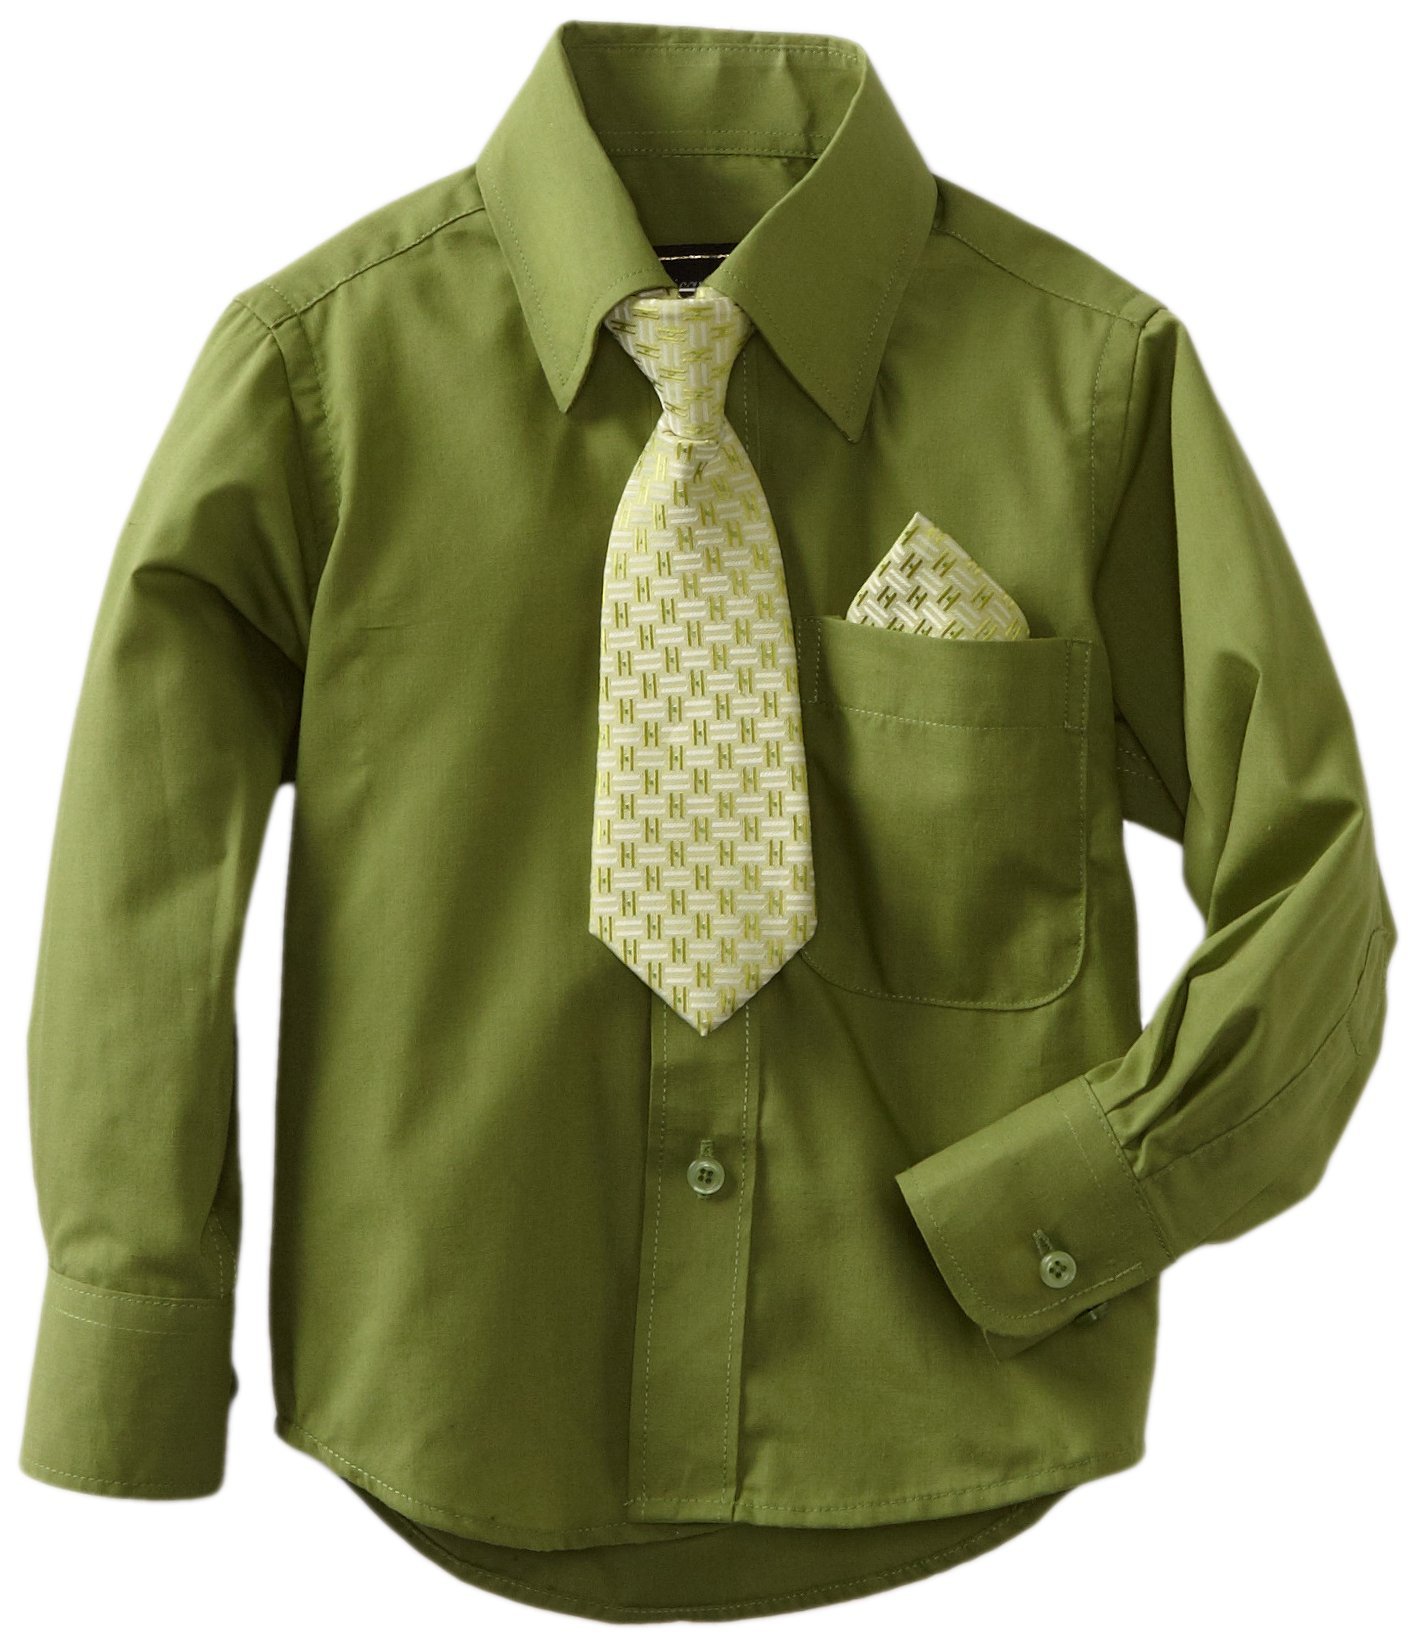 American Exchange Little Boys' Little Dress Shirt With Tie And Pocket Square, Hunter, 6